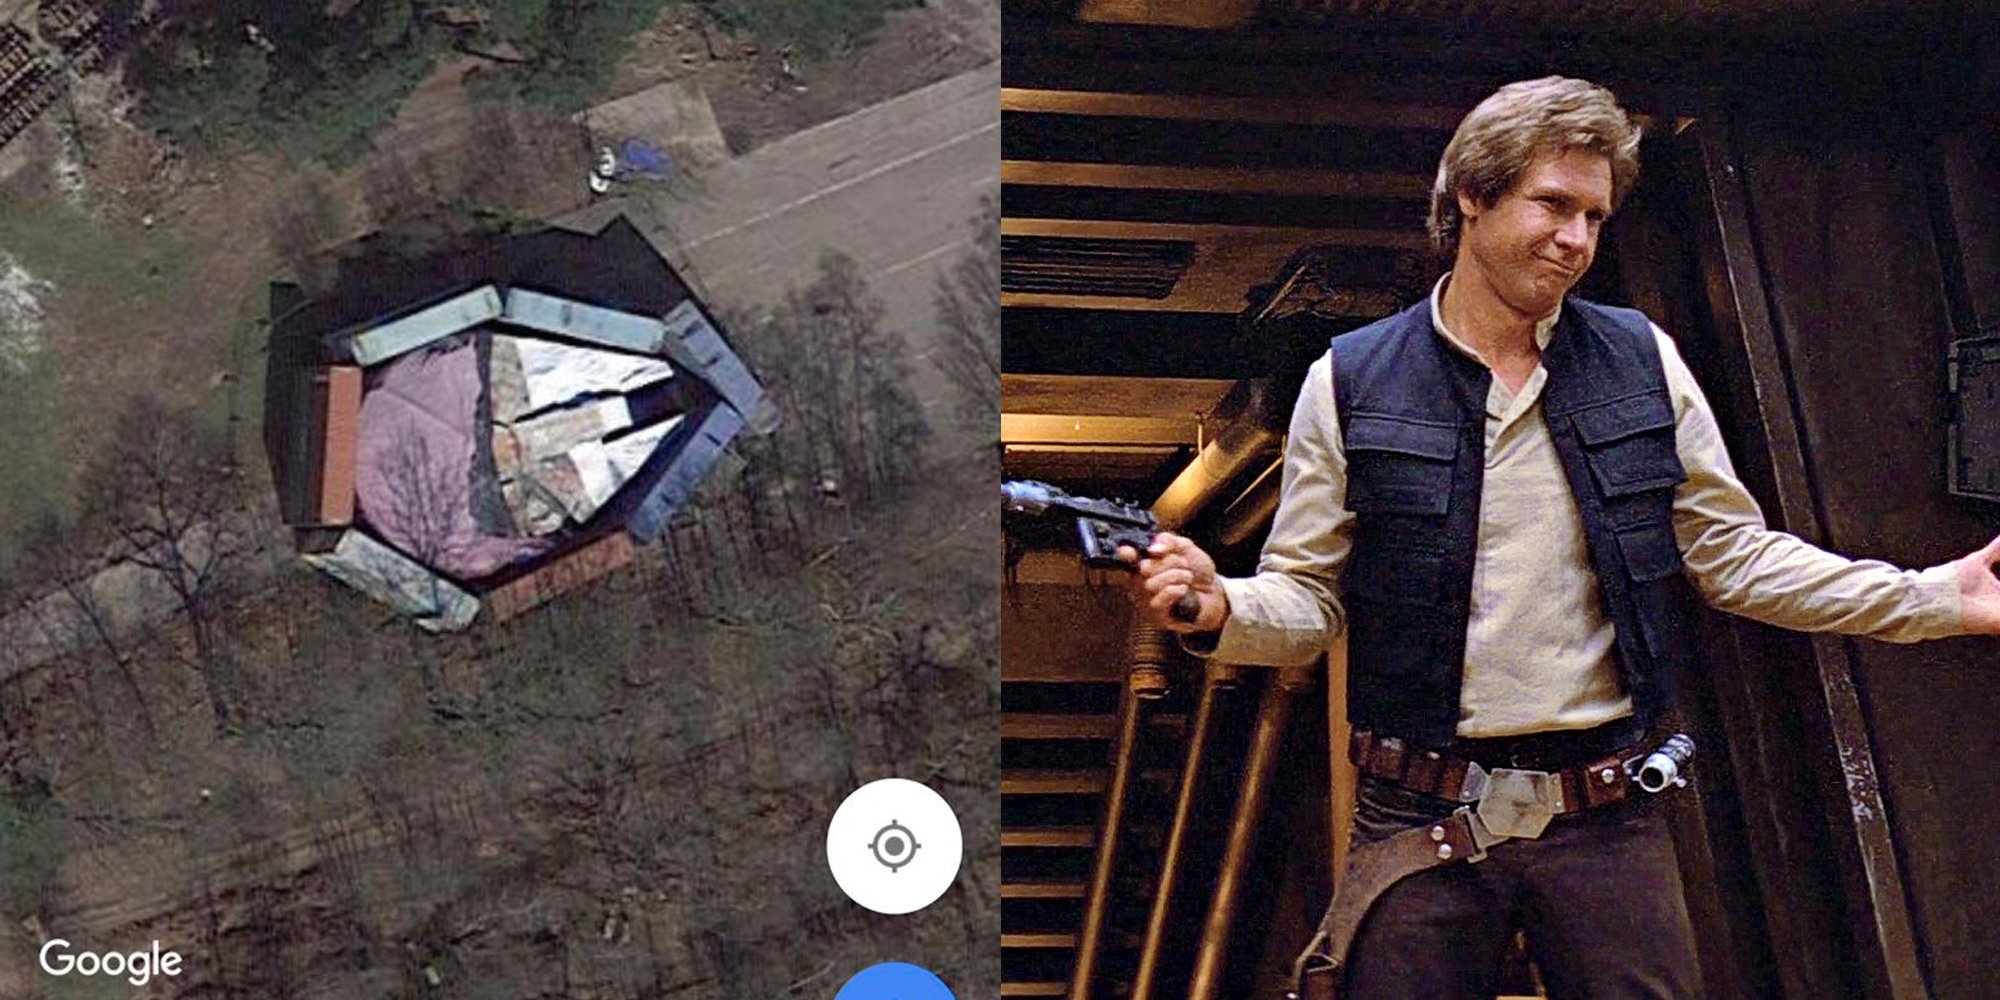 Disney tried to hide the Millennium Falcon but forgot it was on Google Maps https://t.co/XzlheCgVoP https://t.co/tGYt8KUvF8